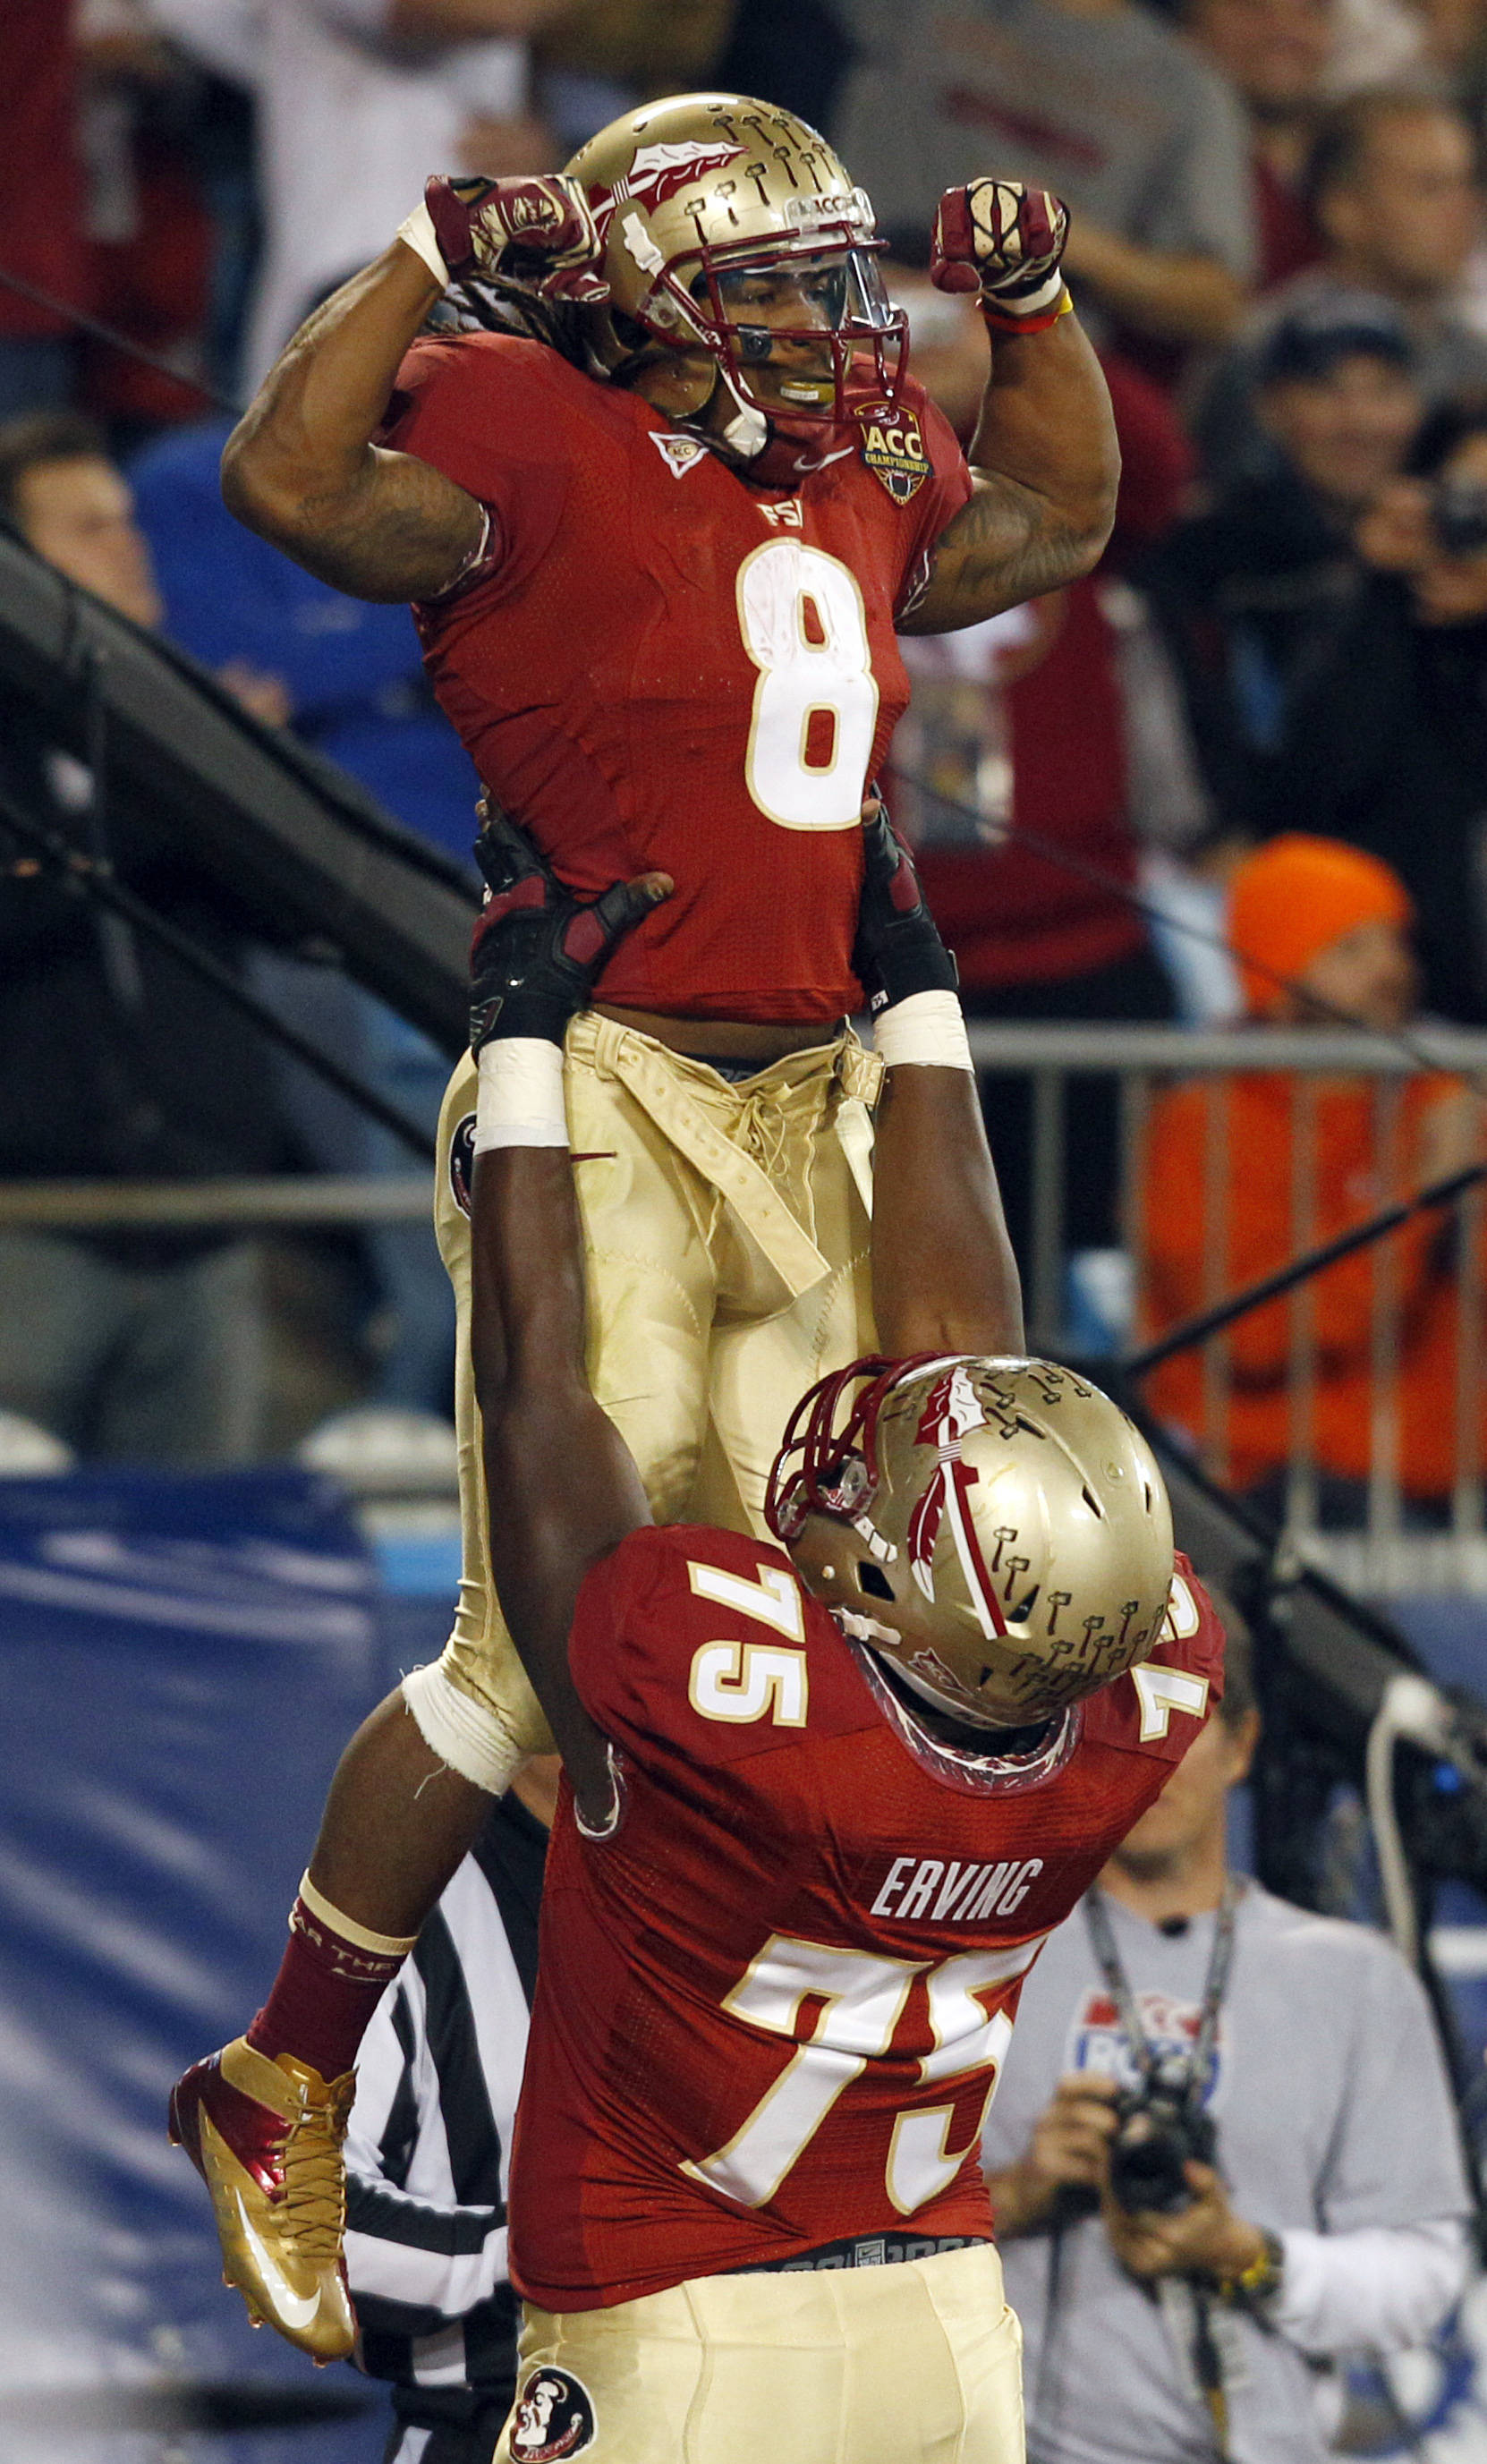 Florida State's Devonta Freeman (8) is lifted by teammate Cameron Erving (75) after his touchdown run against Georgia Tech during the first half. (AP Photo/Chuck Burton)